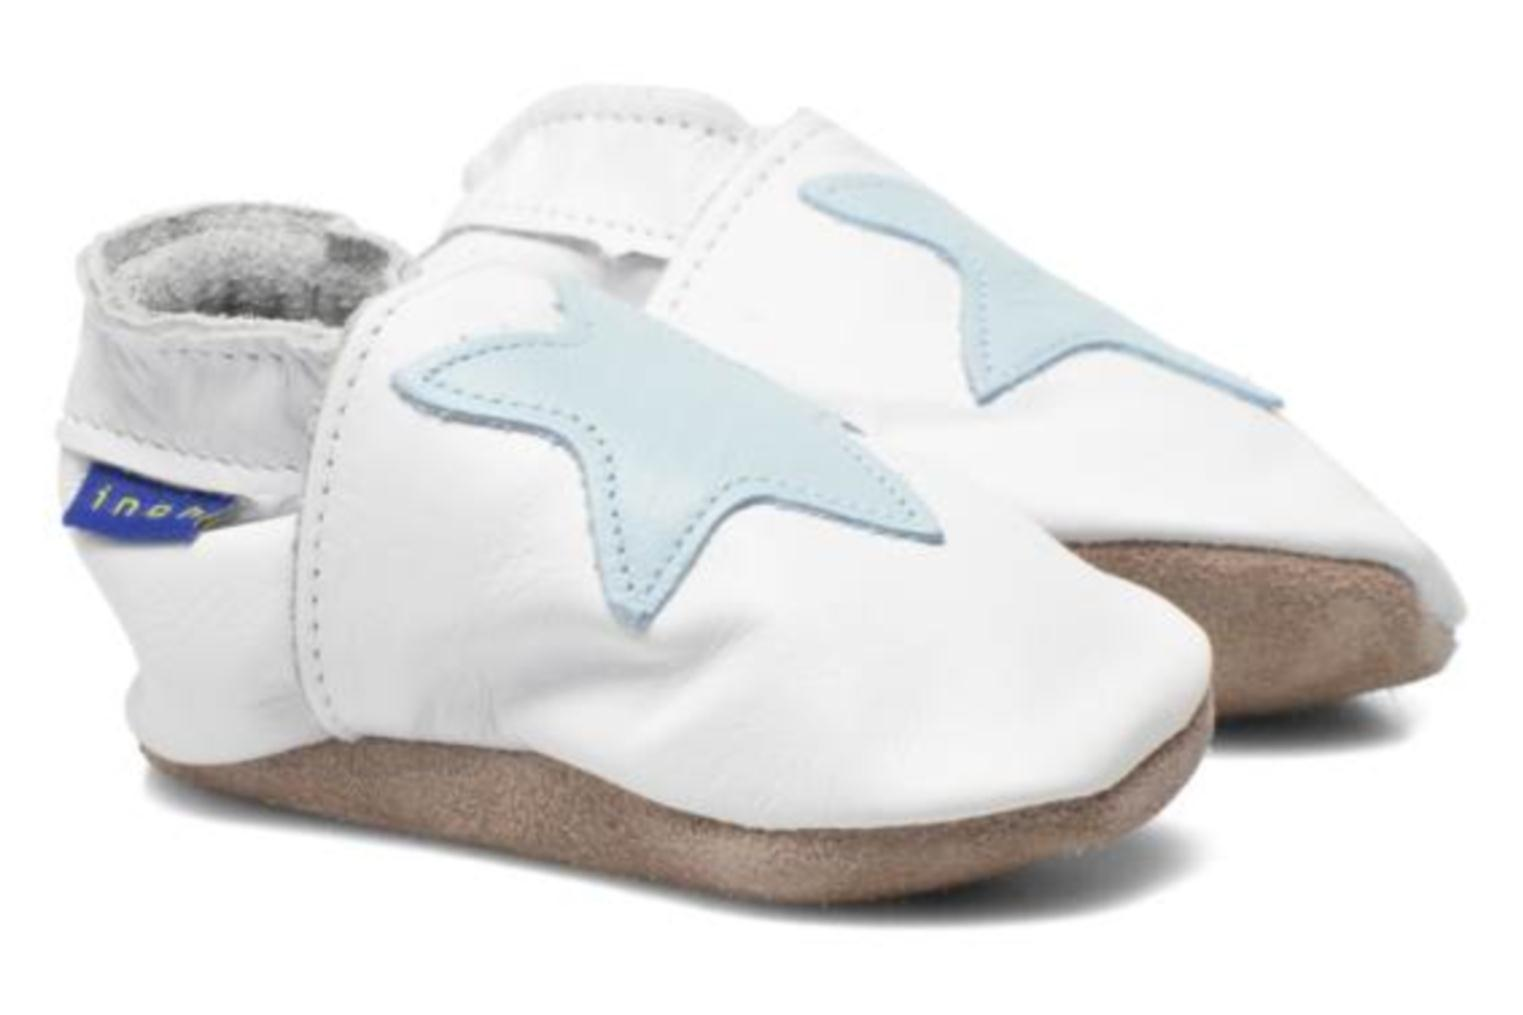 Chaussons Inch Blue Star Blanc vue 3/4